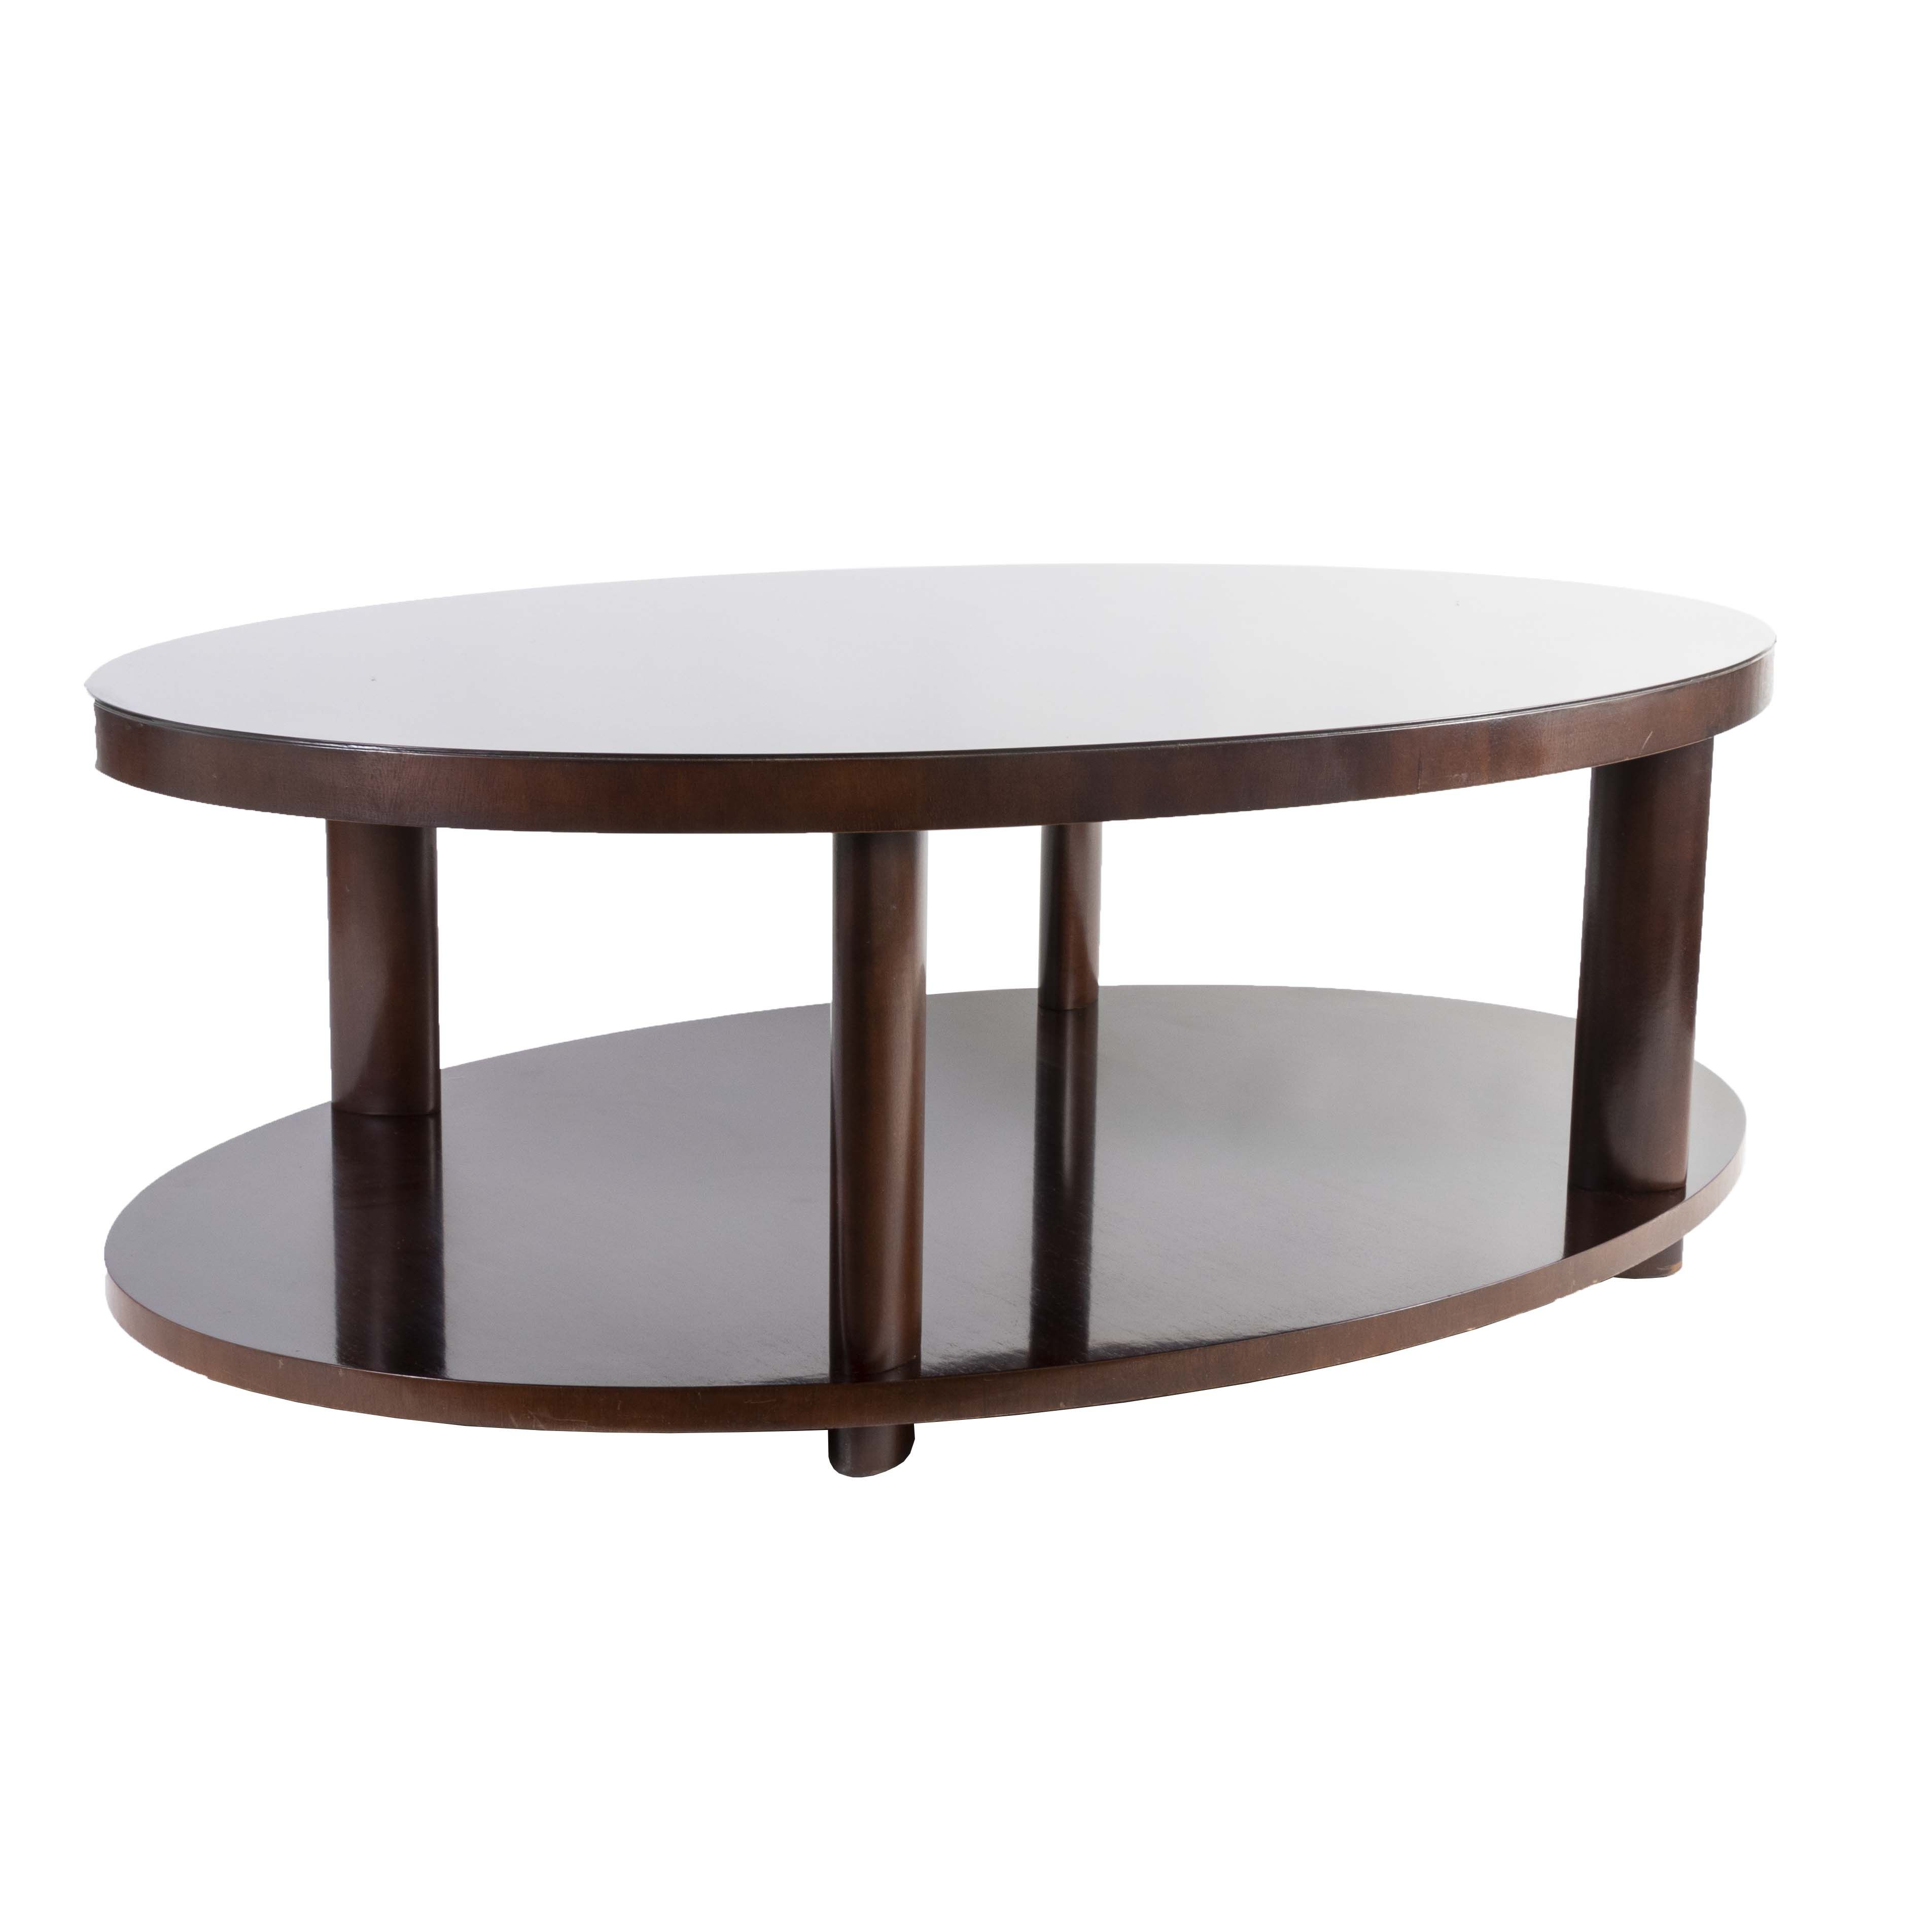 Designed By Barbara Barry For Baker This Modern Oval Coffee Table